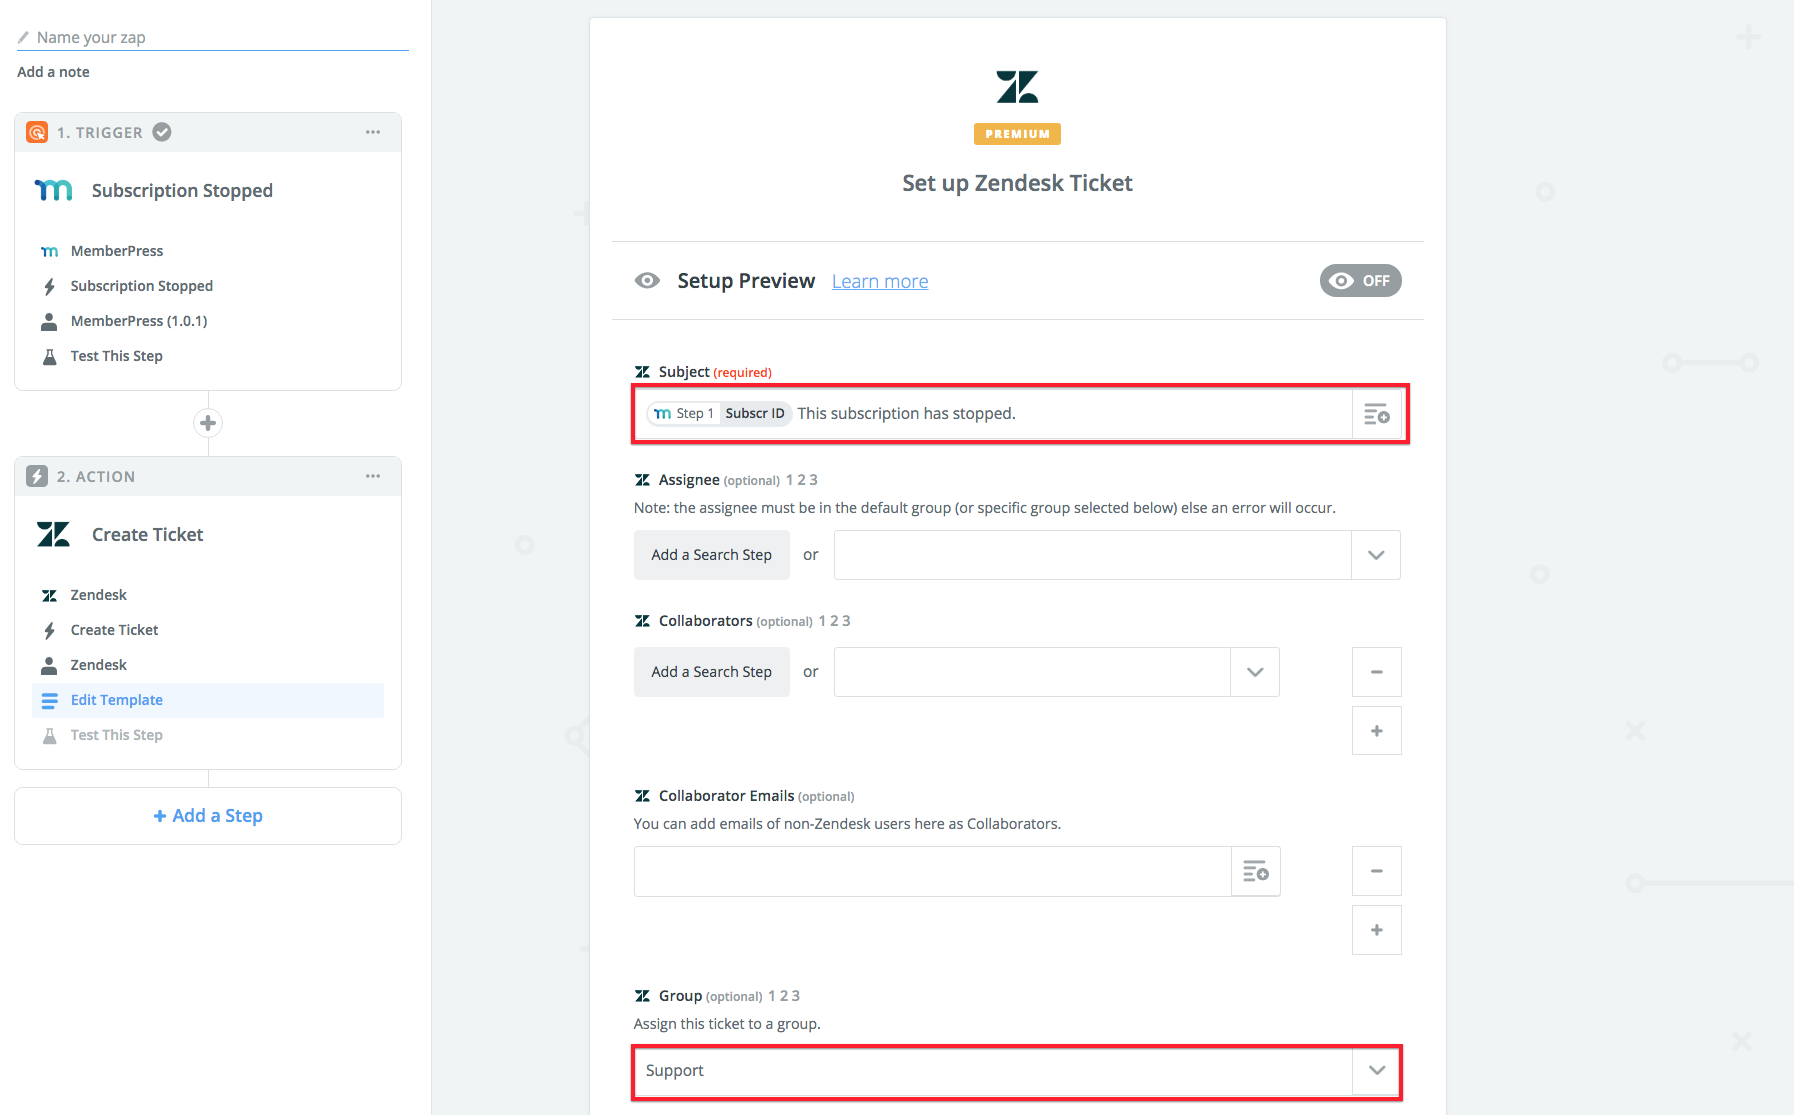 Send follow up ticket for stopped Subscription with Zendesk